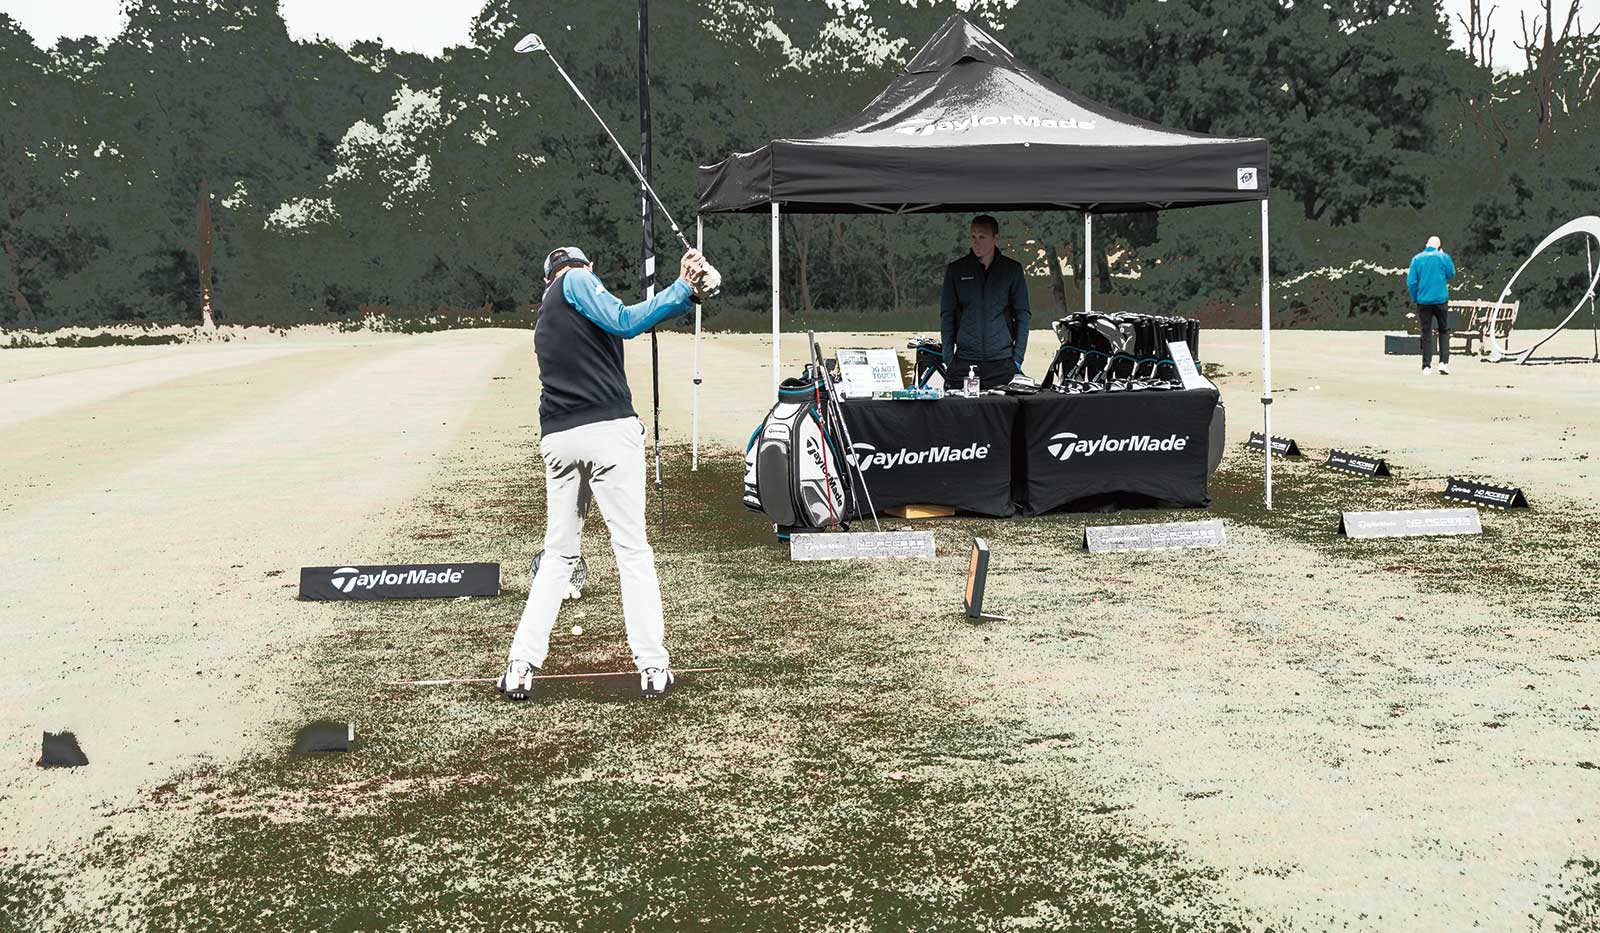 TaylorMade Fitting